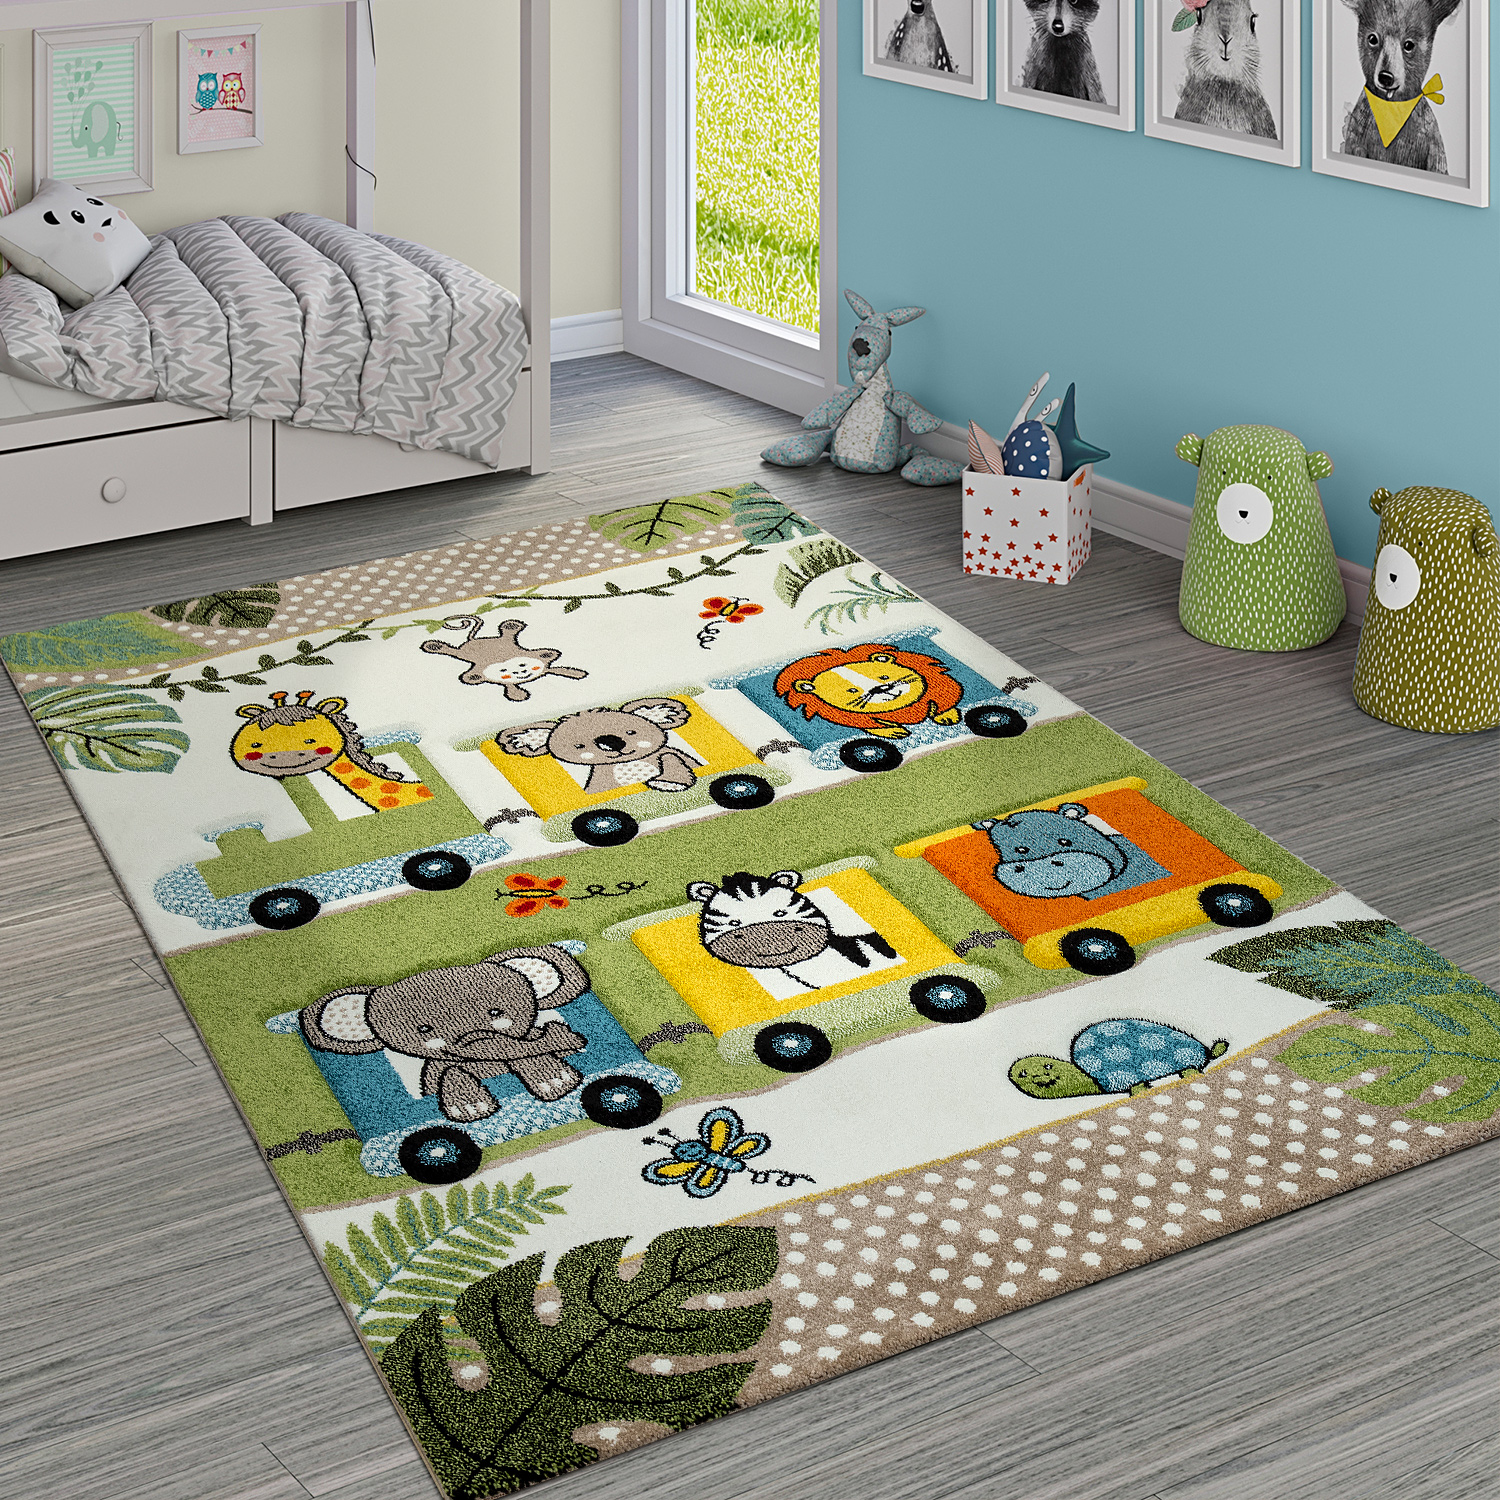 Tapis Enfant À Poils Ras Animaux Jungle Locomotive Vert